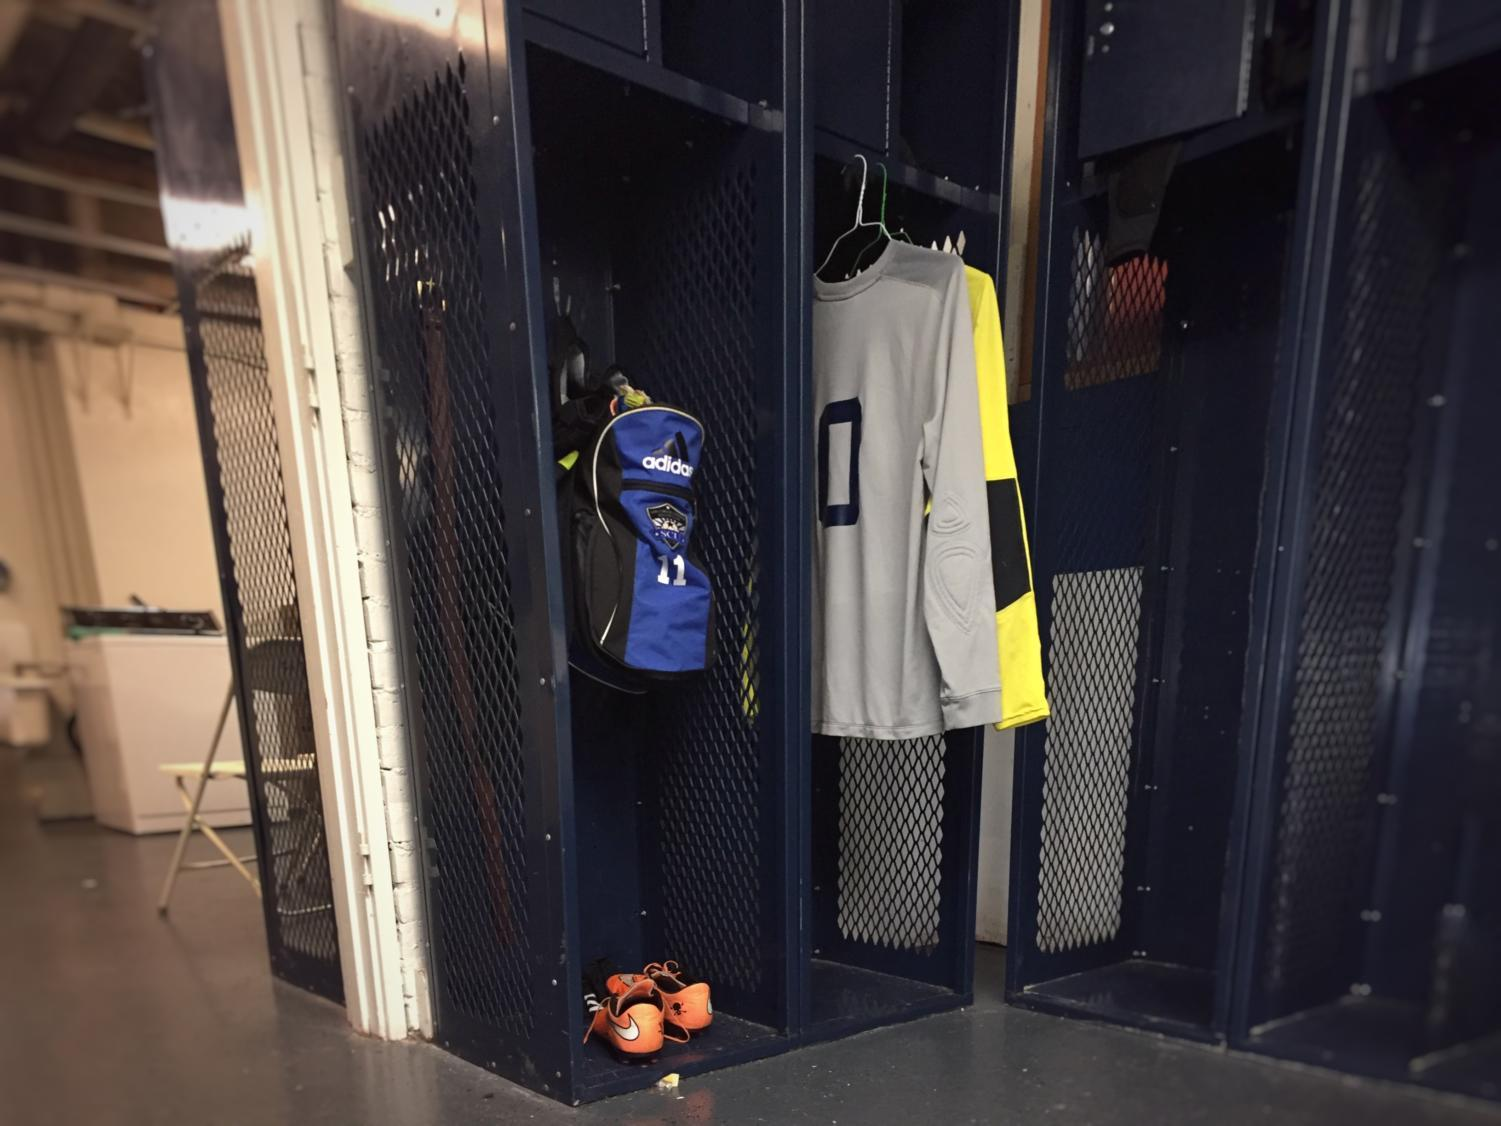 The team room is used by the varsity boys soccer team during the winter season. Players leave their gear in their specific locker. Muaath Nofal, a senior on the soccer team, said: